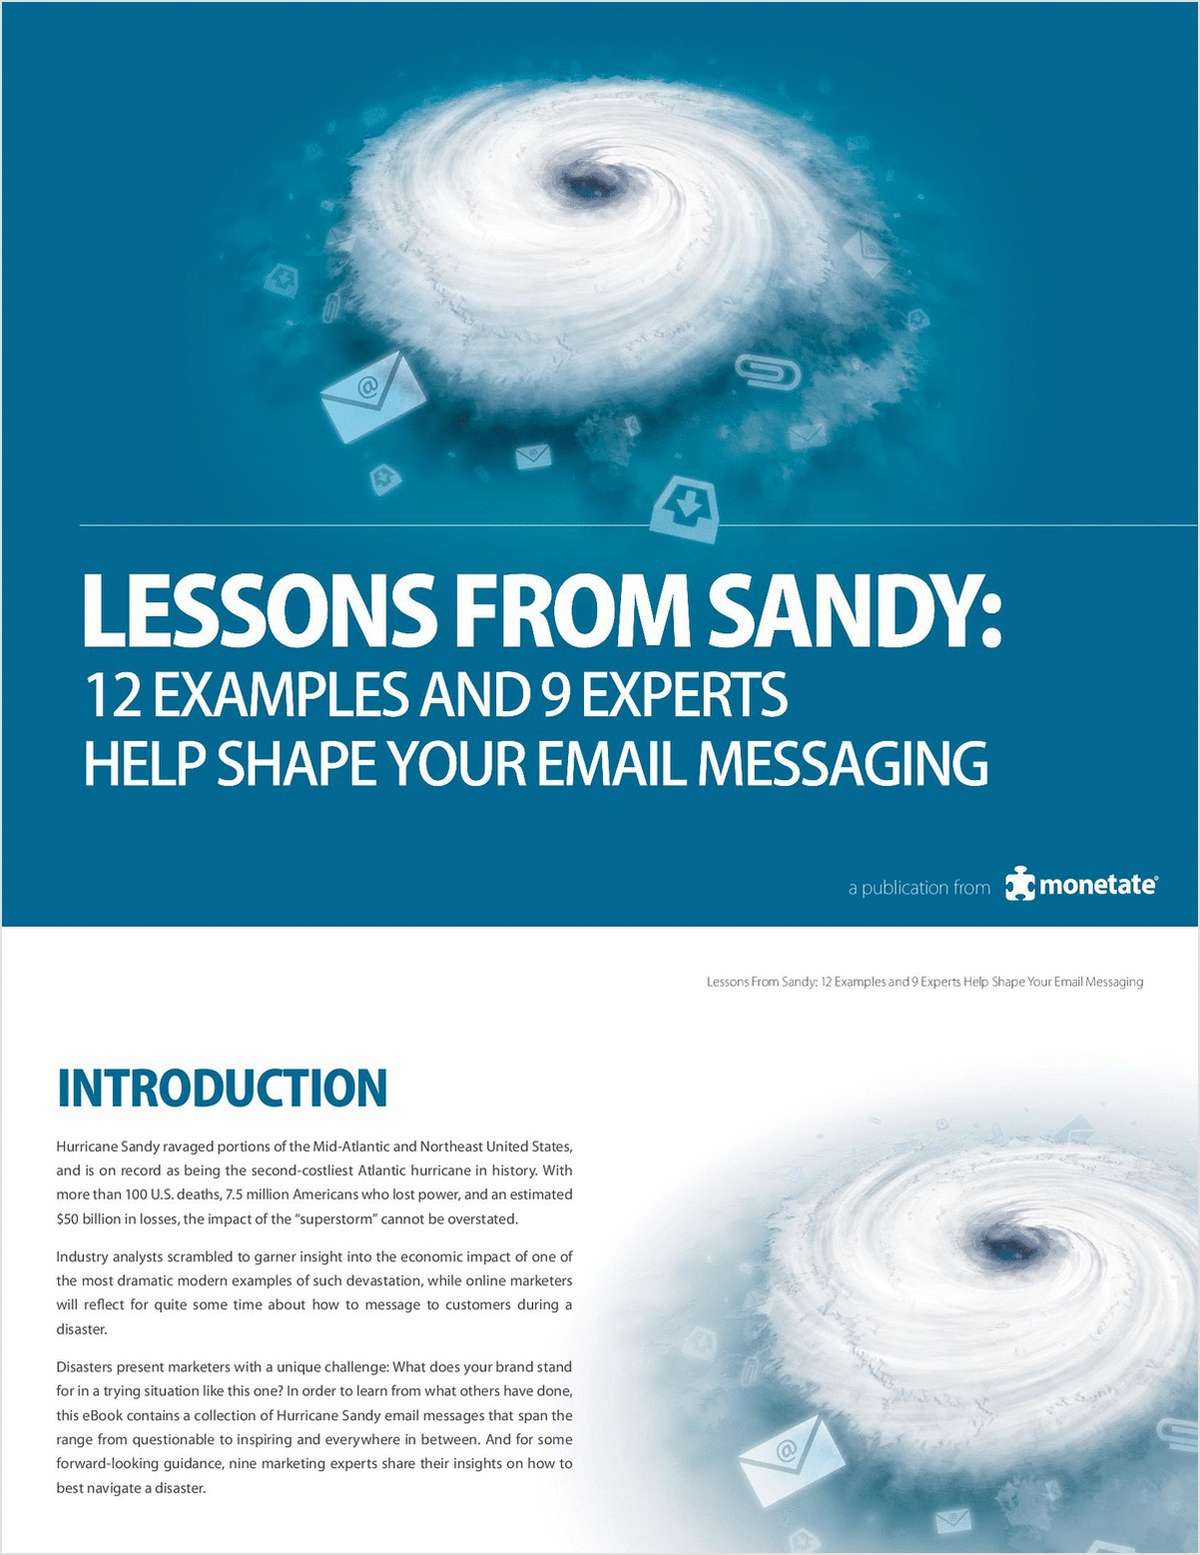 Lessons From Sandy:  12 Examples and 9 Experts Help Shape Your Email Messaging